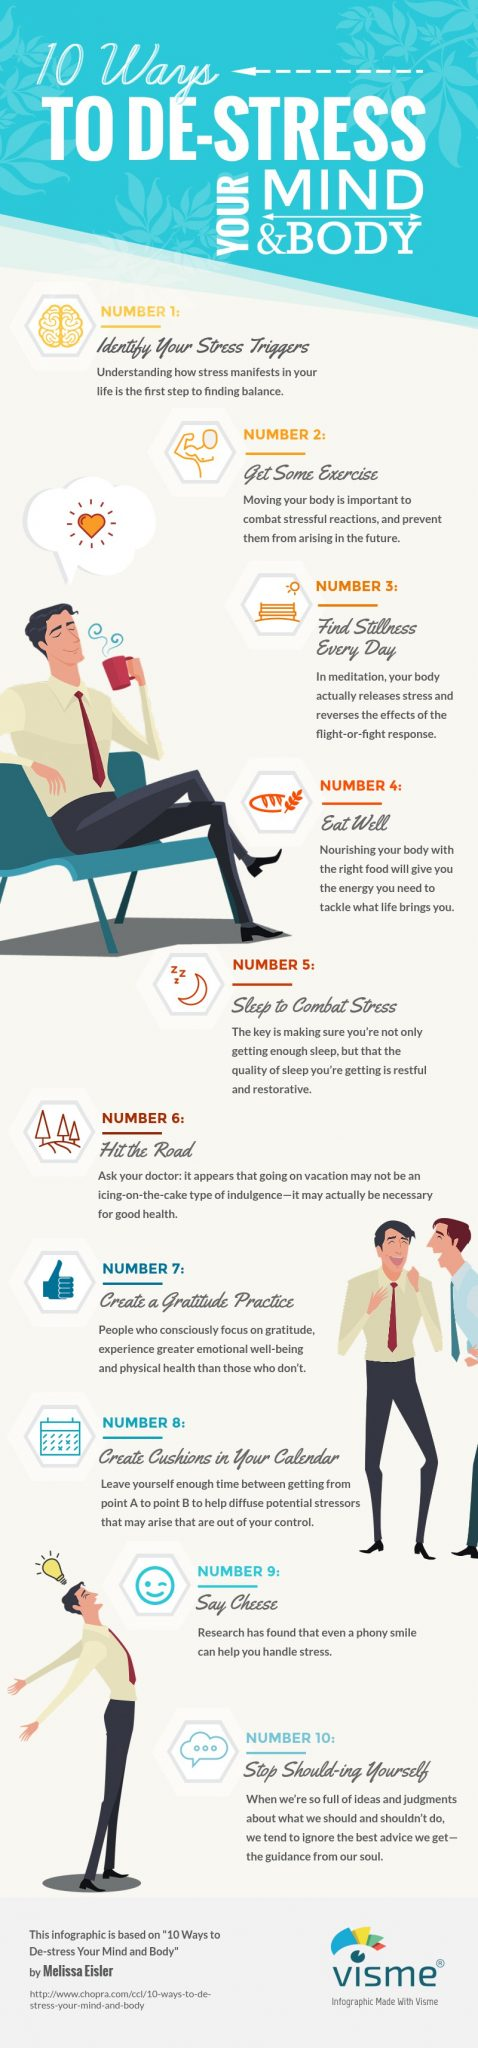 De-stress your mind and body: infographic